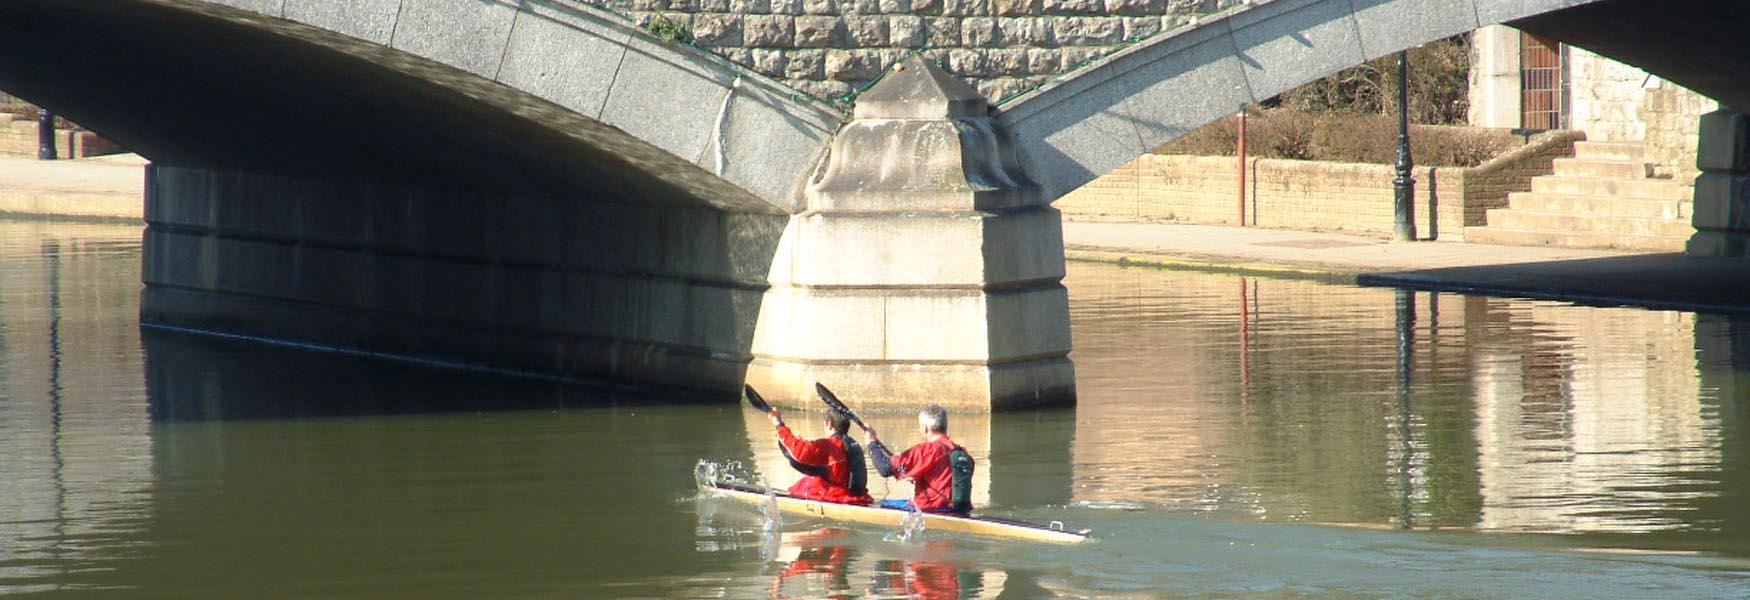 Canoeists on River Medway